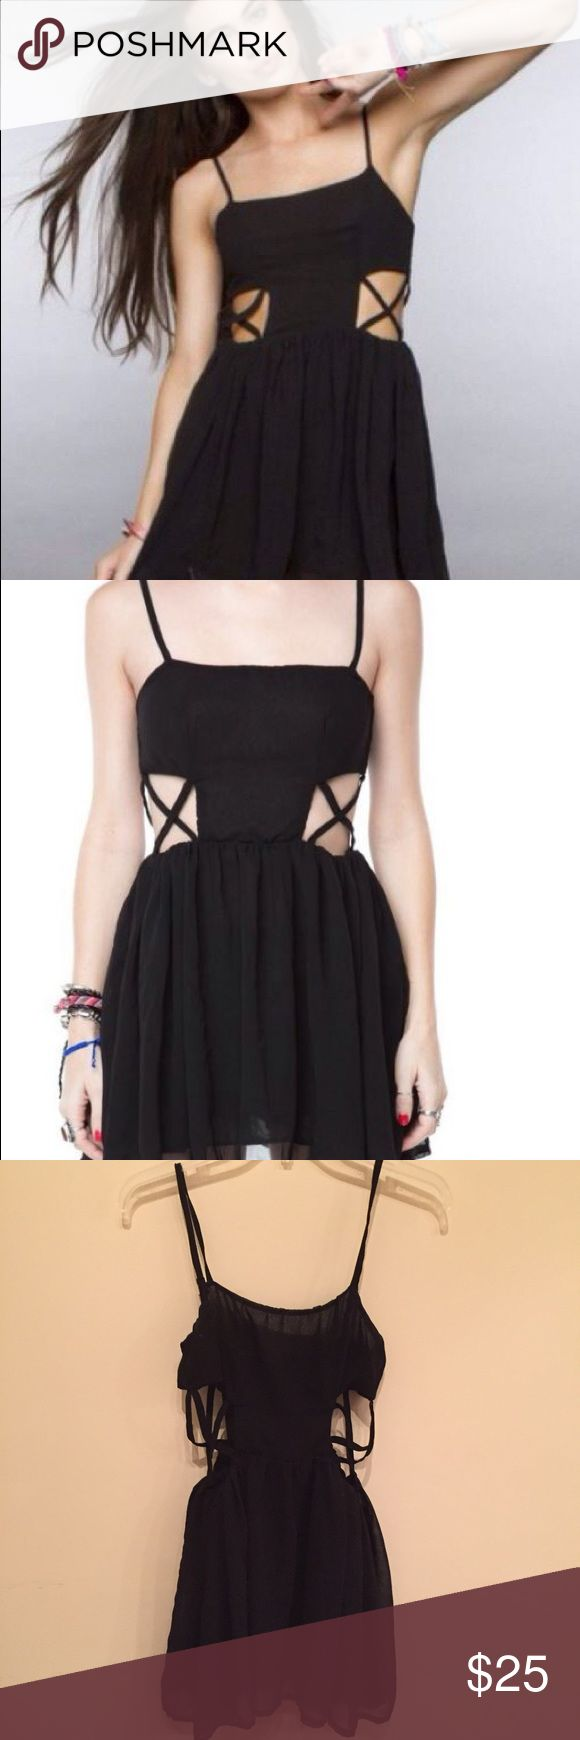 """Rare Cut Out Pauline Dress By Brandy Melville ❤️ Ready to Party? 'Tis the Season ✨ Hipster black mini dress with seductive criss cross side cut outs and adjustable Spaghetti straps✨ Size: Label reads """"One size fits all"""" will fit size XS/S; Material: 65% Cotton, 35% Polyester ❤️ Brandy Melville Dresses Mini"""